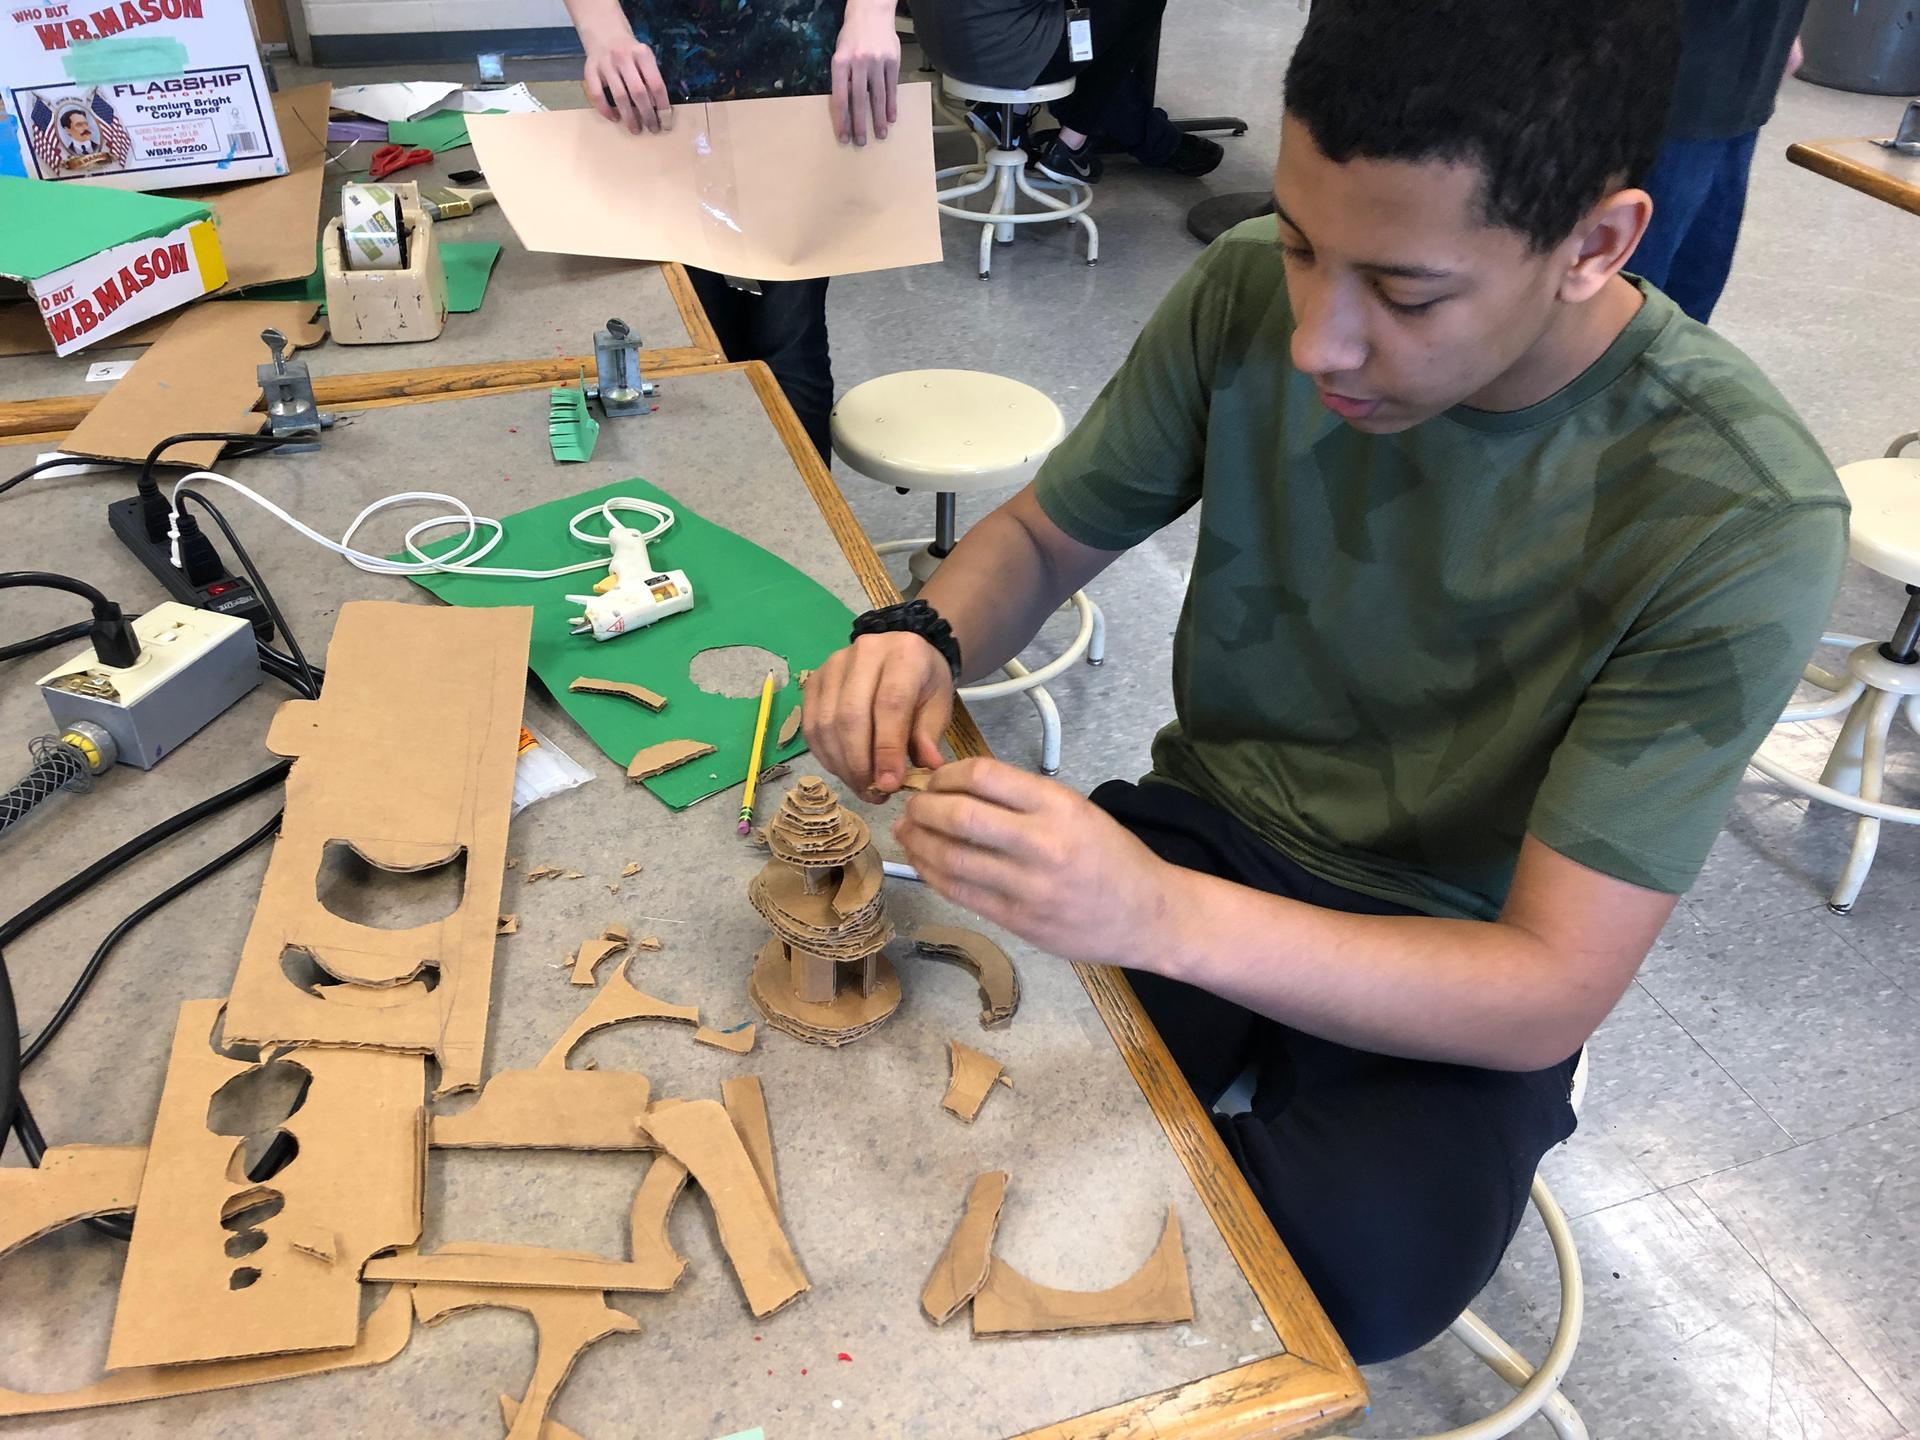 Student building model